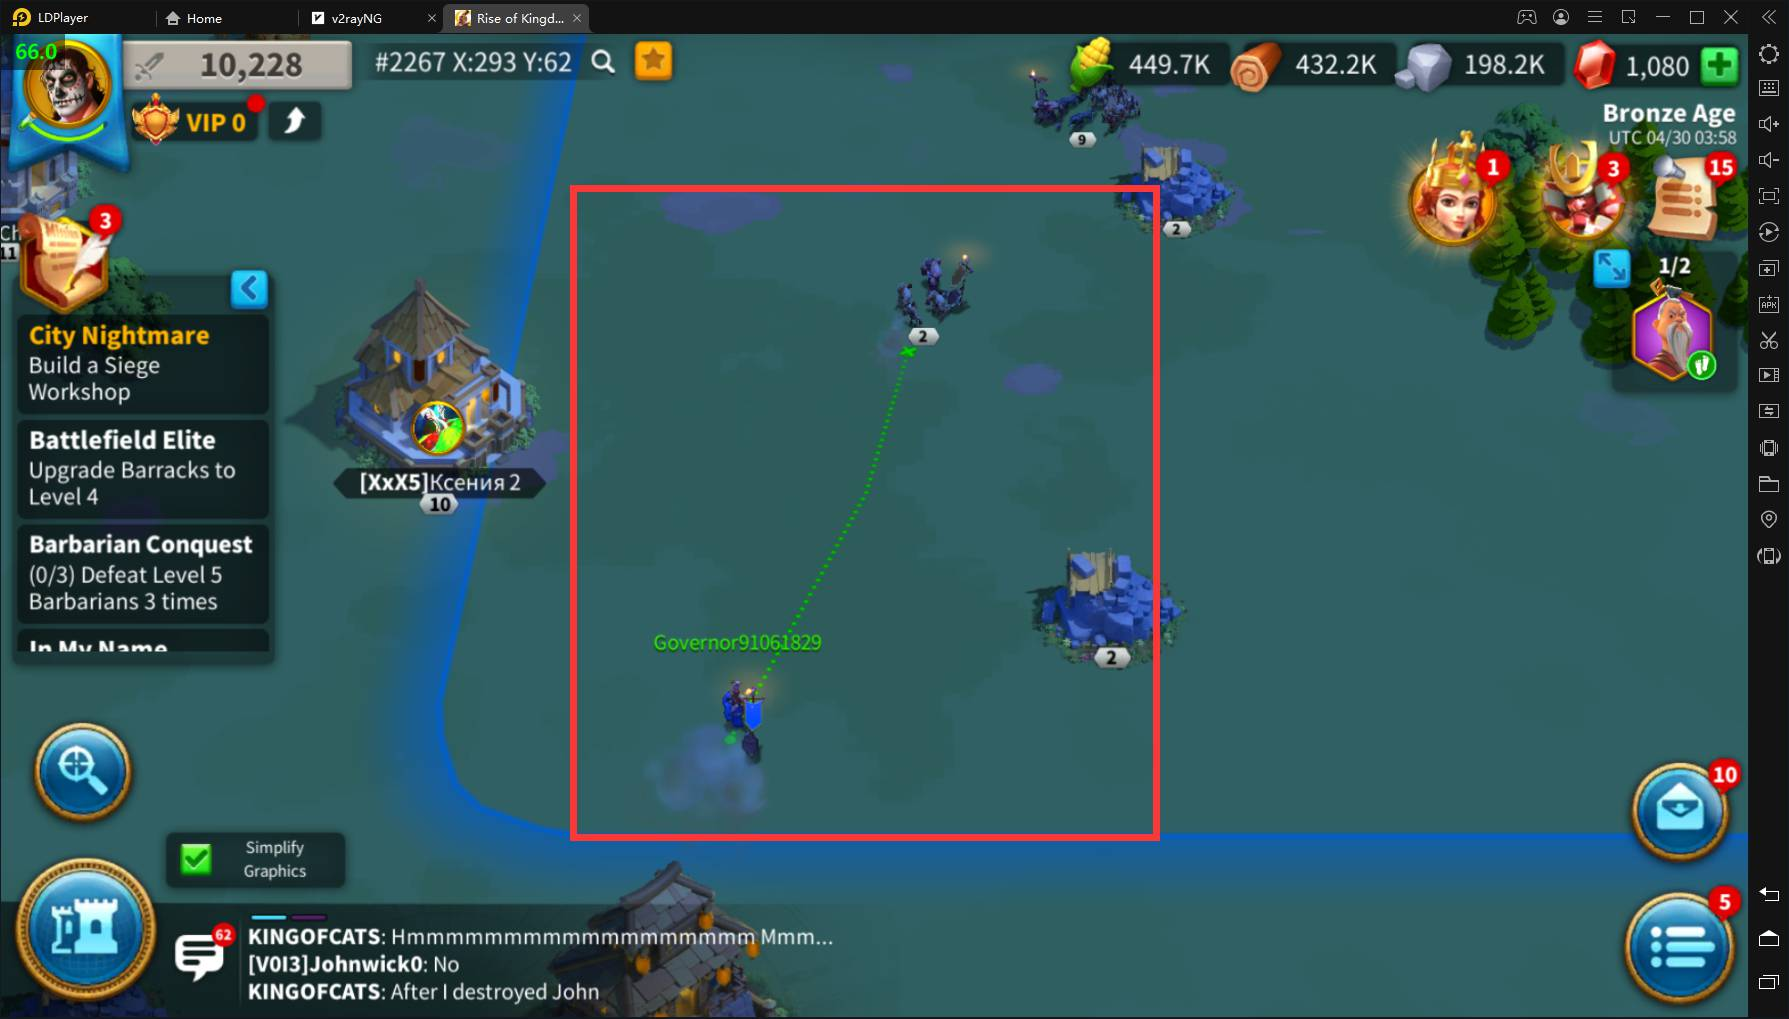 How to enhance perforamce of Rise of Kingdoms on PC with LDPlayer